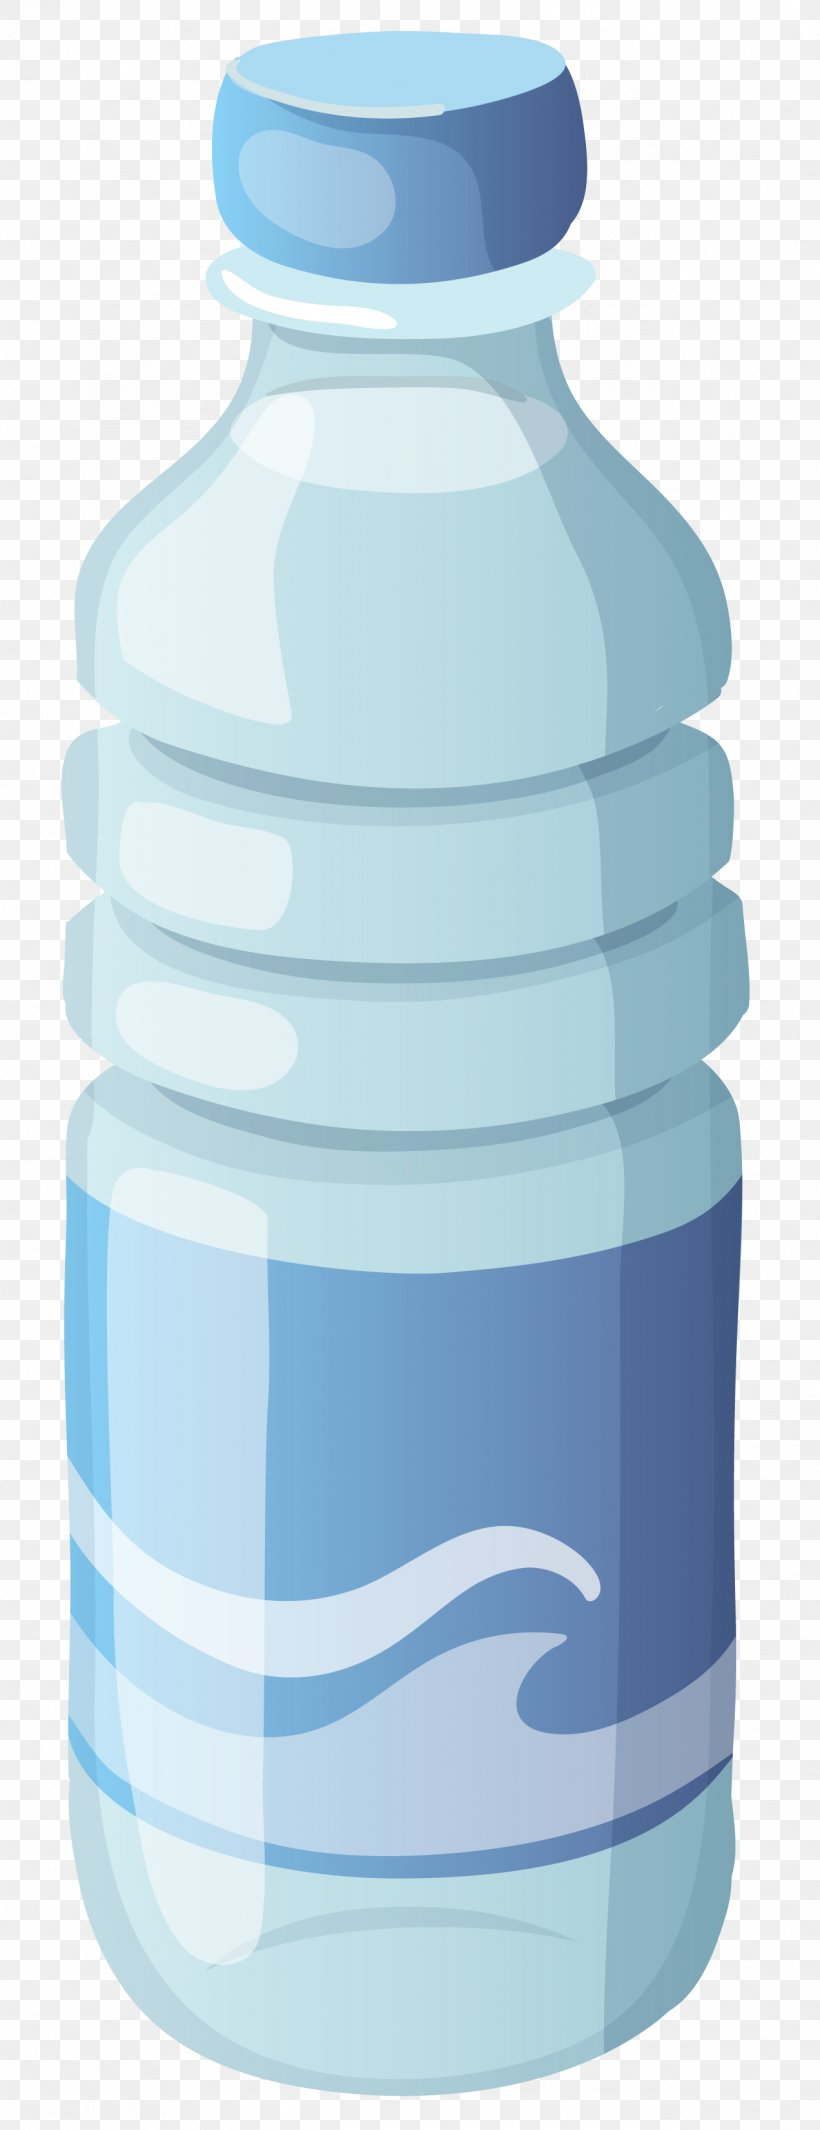 Water Bottle Bottled Water Clip Art, PNG, 1272x3305px, Water Bottles, Beer Bottle, Bottle, Bottled Water, Drinking Water Download Free